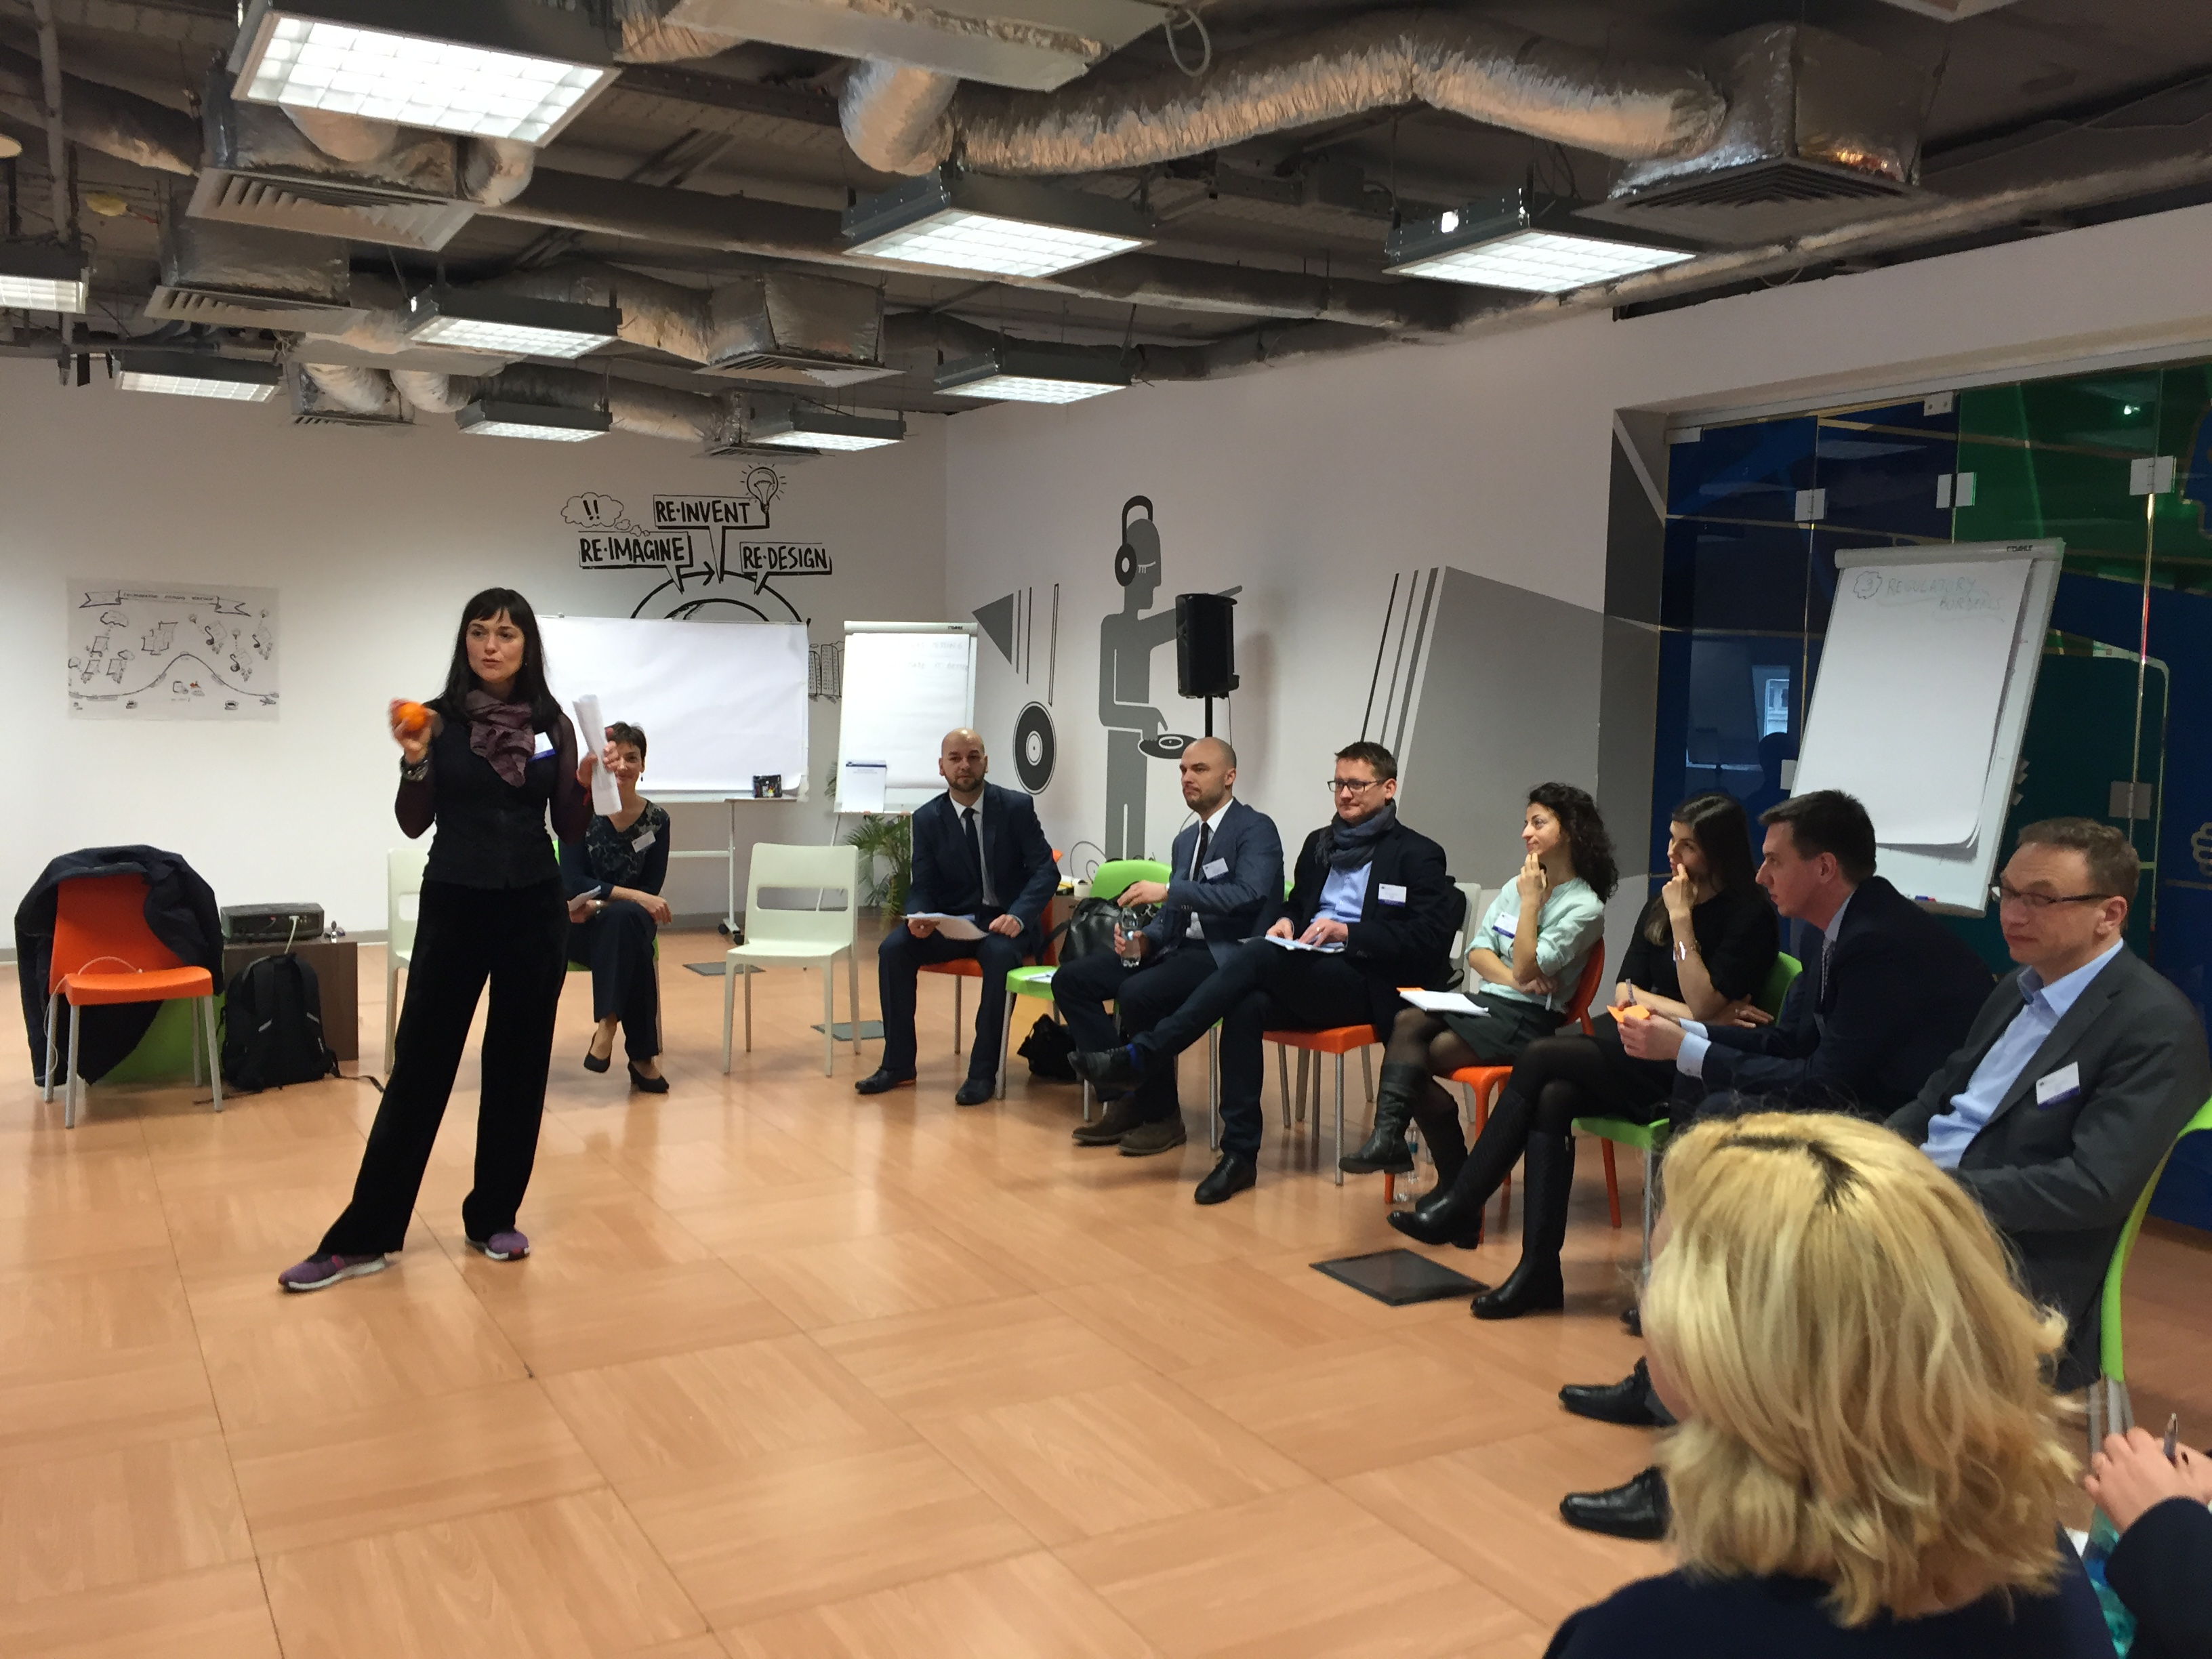 Pictures from the workshop with the Romanian and Polish entrepreneurs, March 3, 2016